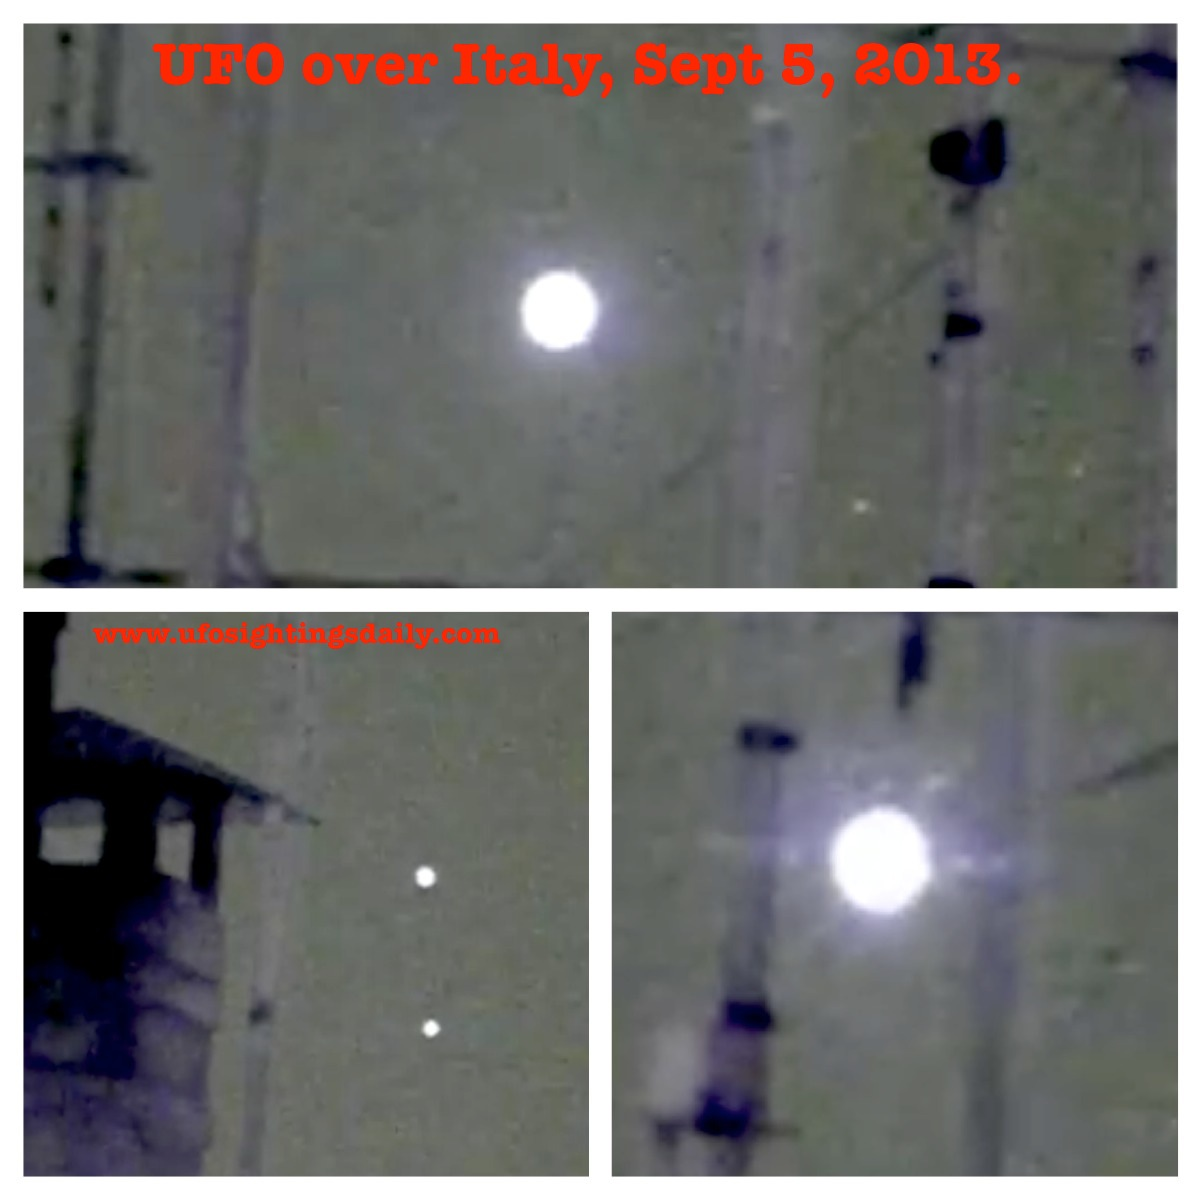 UFO SIGHTINGS DAILY: UFO Recorded Over Rome, Italy On Sept ... Ufo 2013